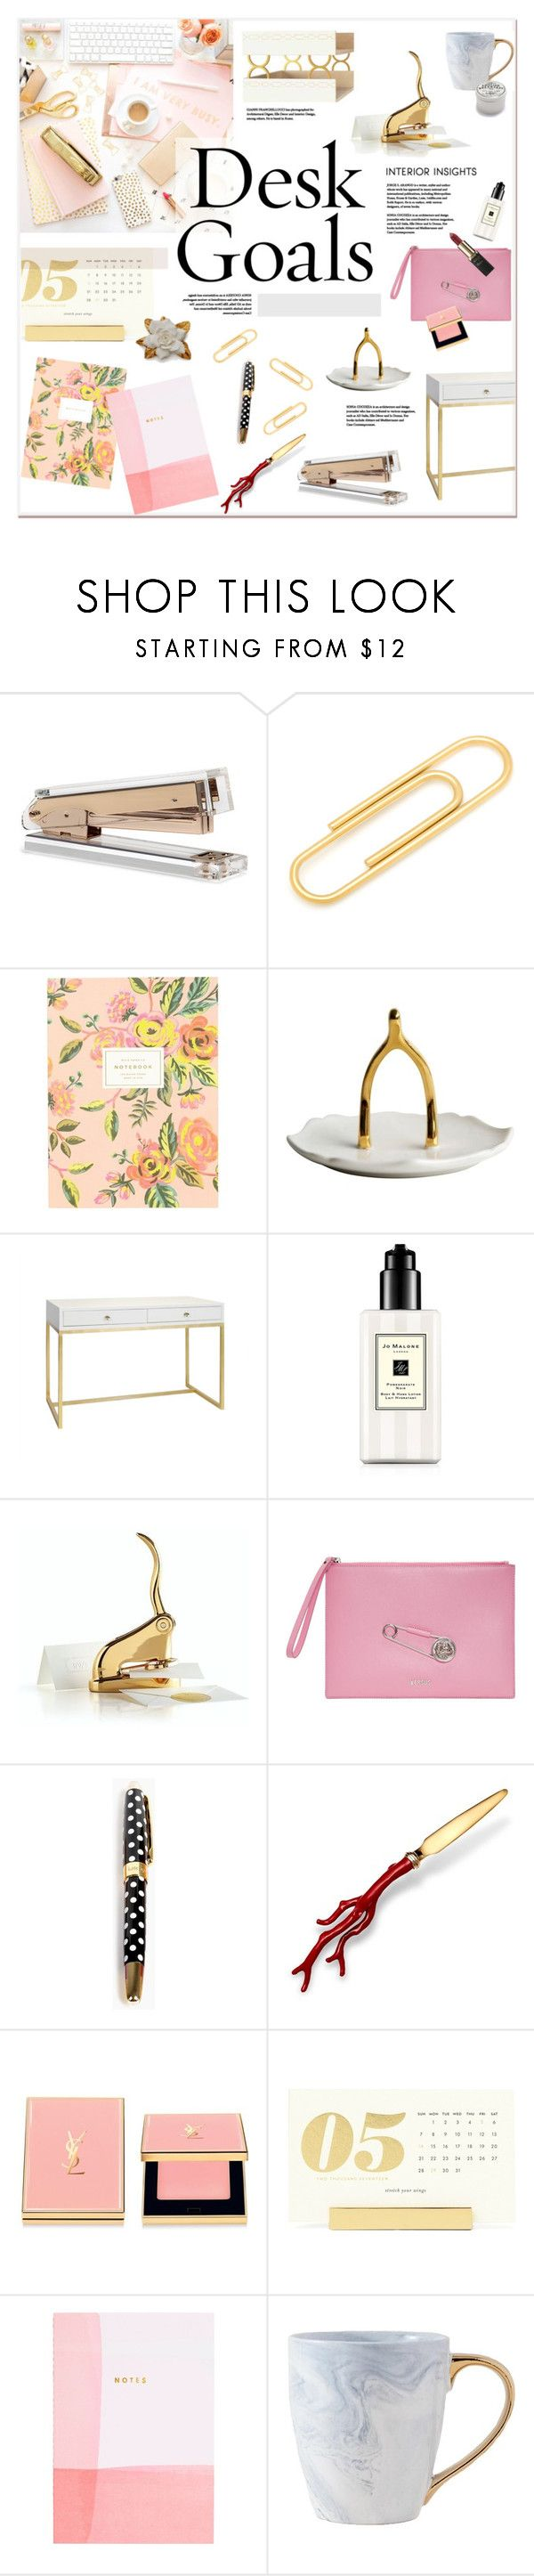 """Desk Goals"" by watereverysunday ❤ liked on Polyvore featuring interior, interiors, interior design, home, home decor, interior decorating, Ox & Bull Trading Co., Rifle Paper Co, Imm Living and Worlds Away"